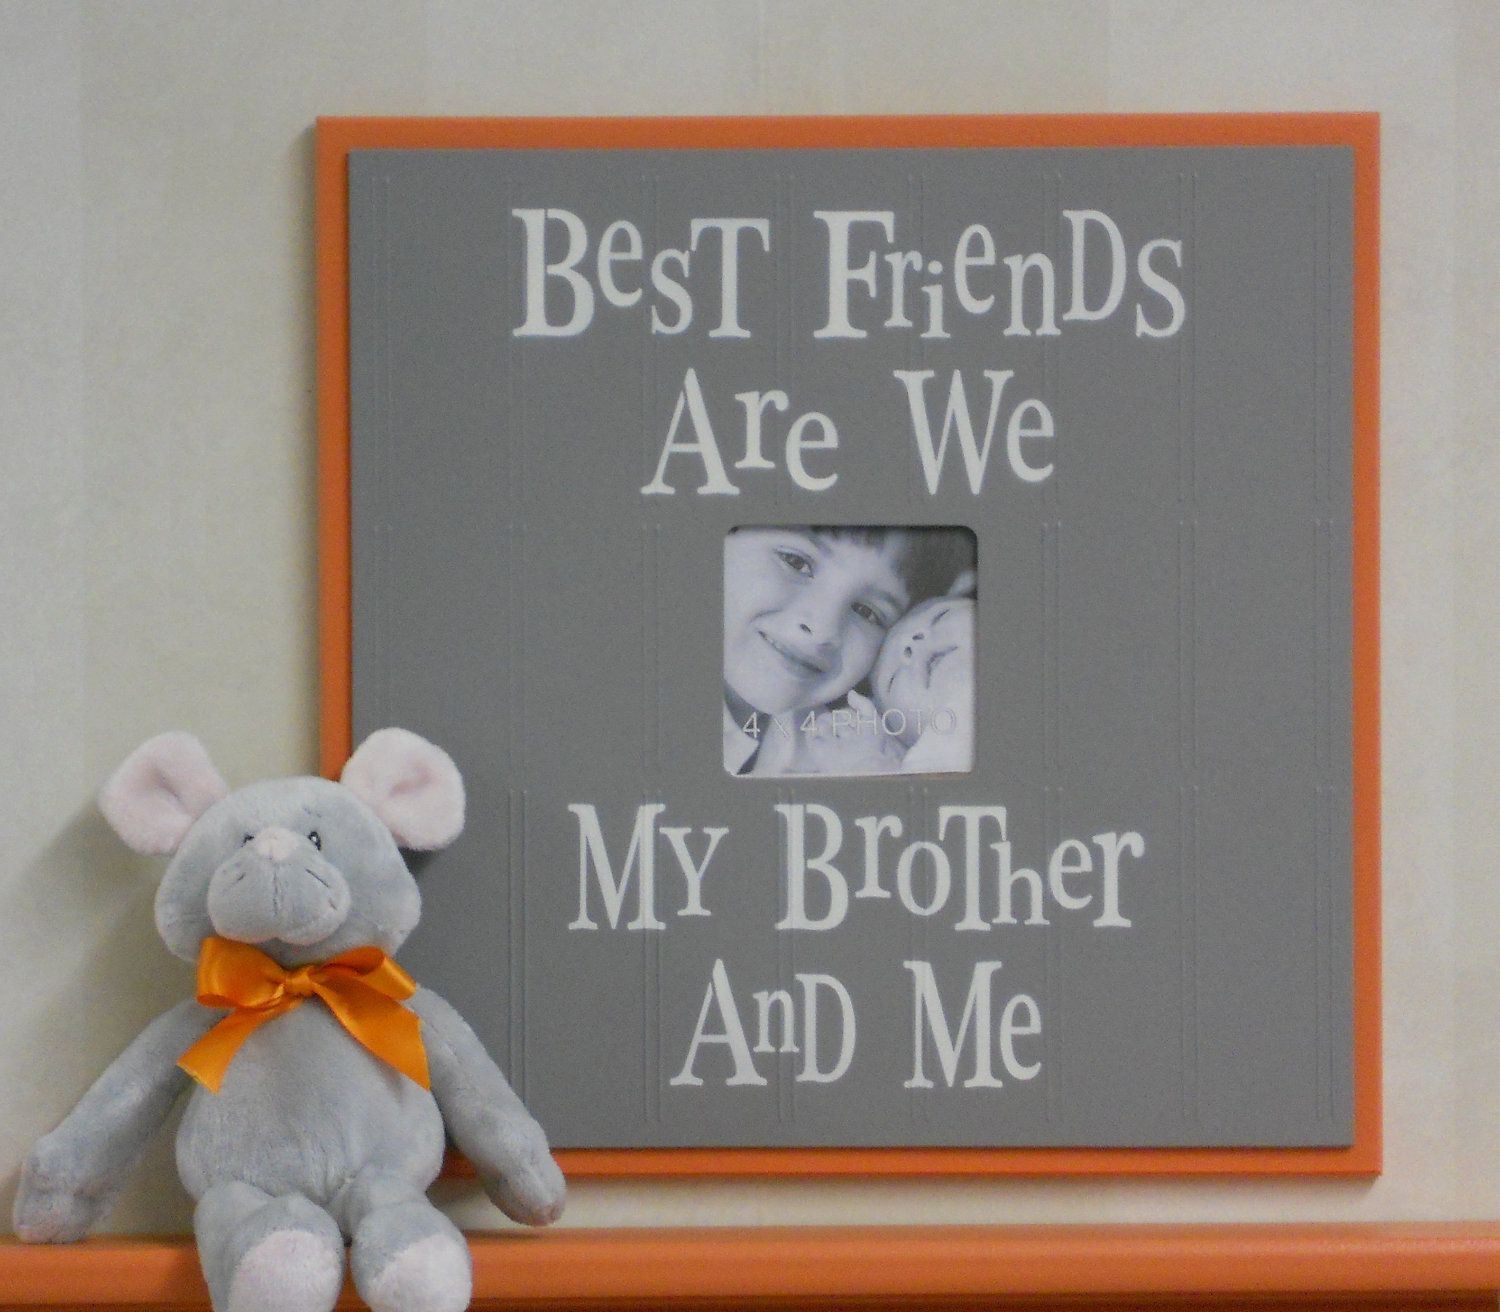 Orange and Gray Nursery Decor 16x16  Picture Frame Sign - Best Friends Are We My Brother And Me썬시티카지노카지노카지노★★ASIA17.COM★★강원랜드카지노에이플러스카지노